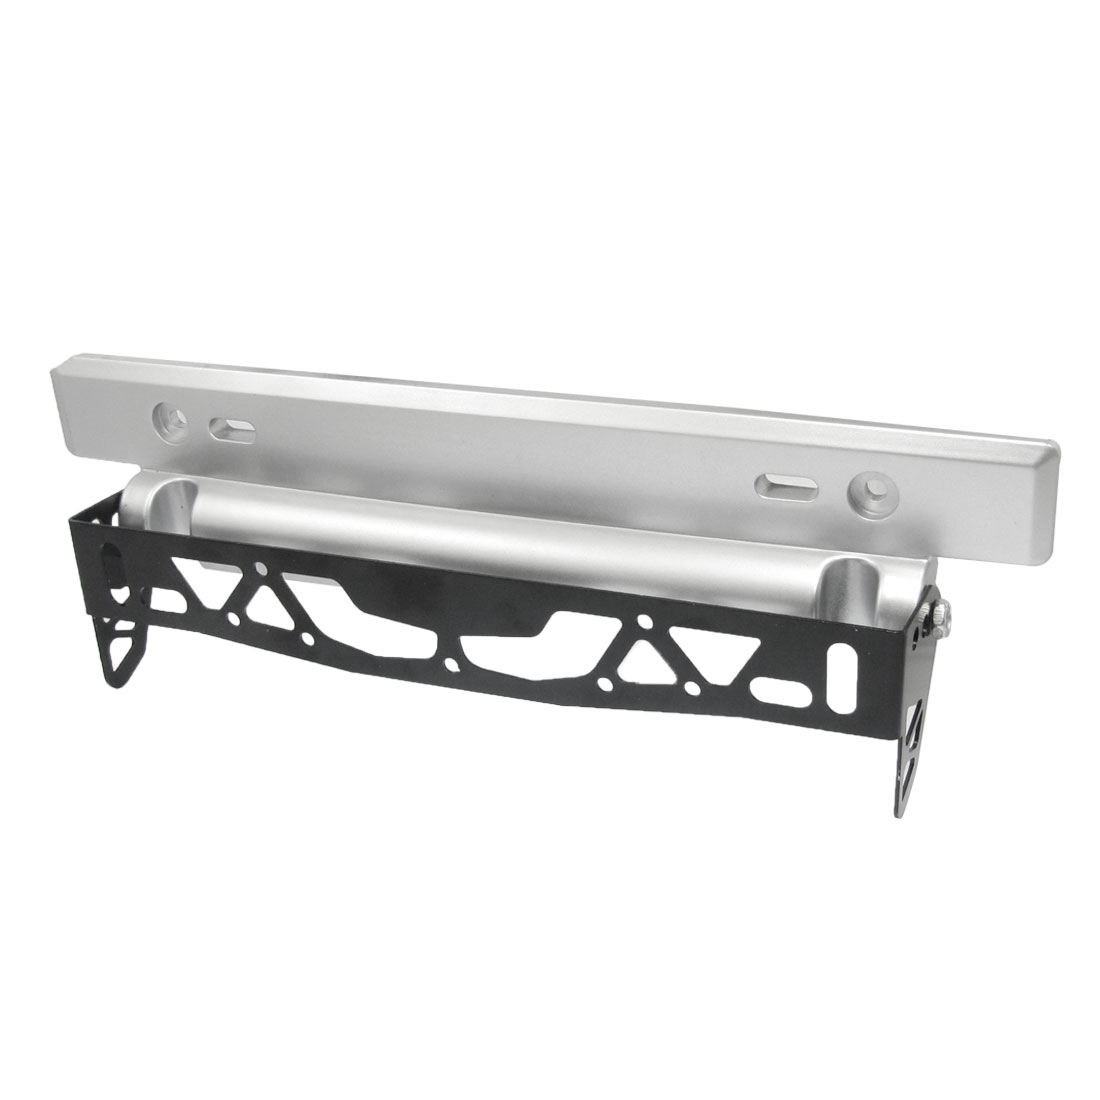 Silver Tone Black Alloy Plastic Adjustable Number Plate for Vehicle